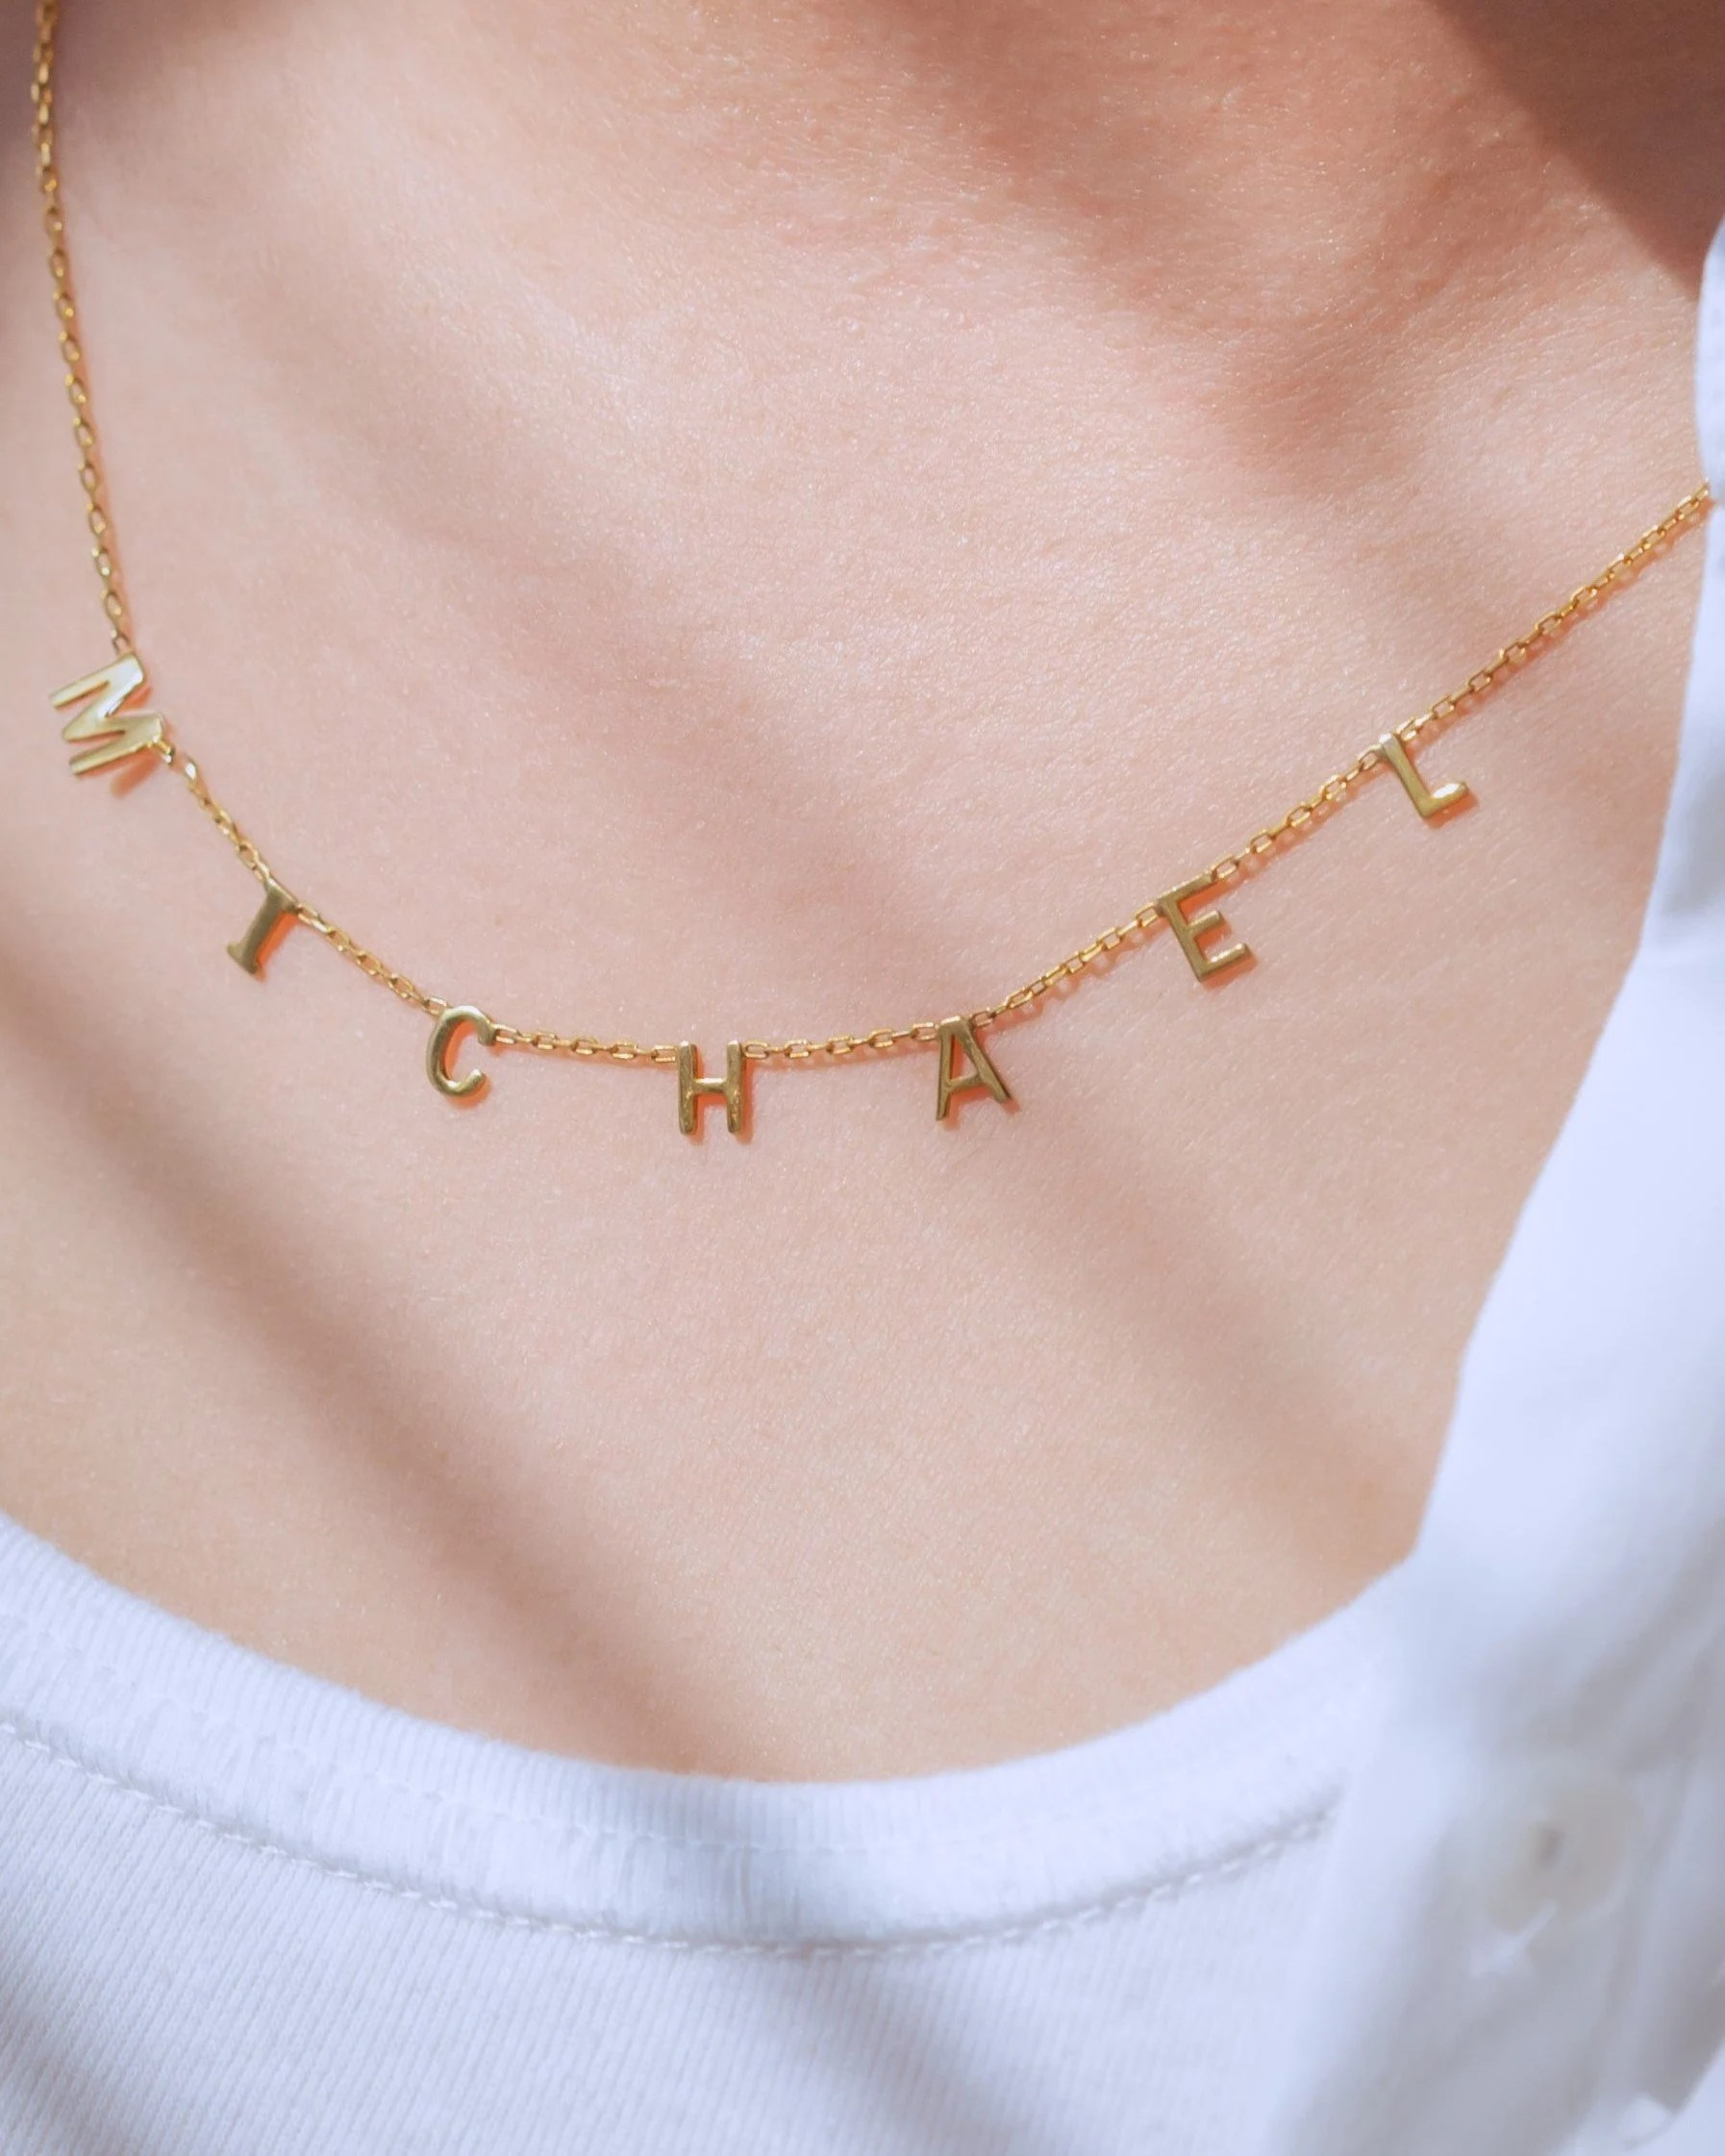 Personalized Name Necklace  Initial Necklace  Letter image 4